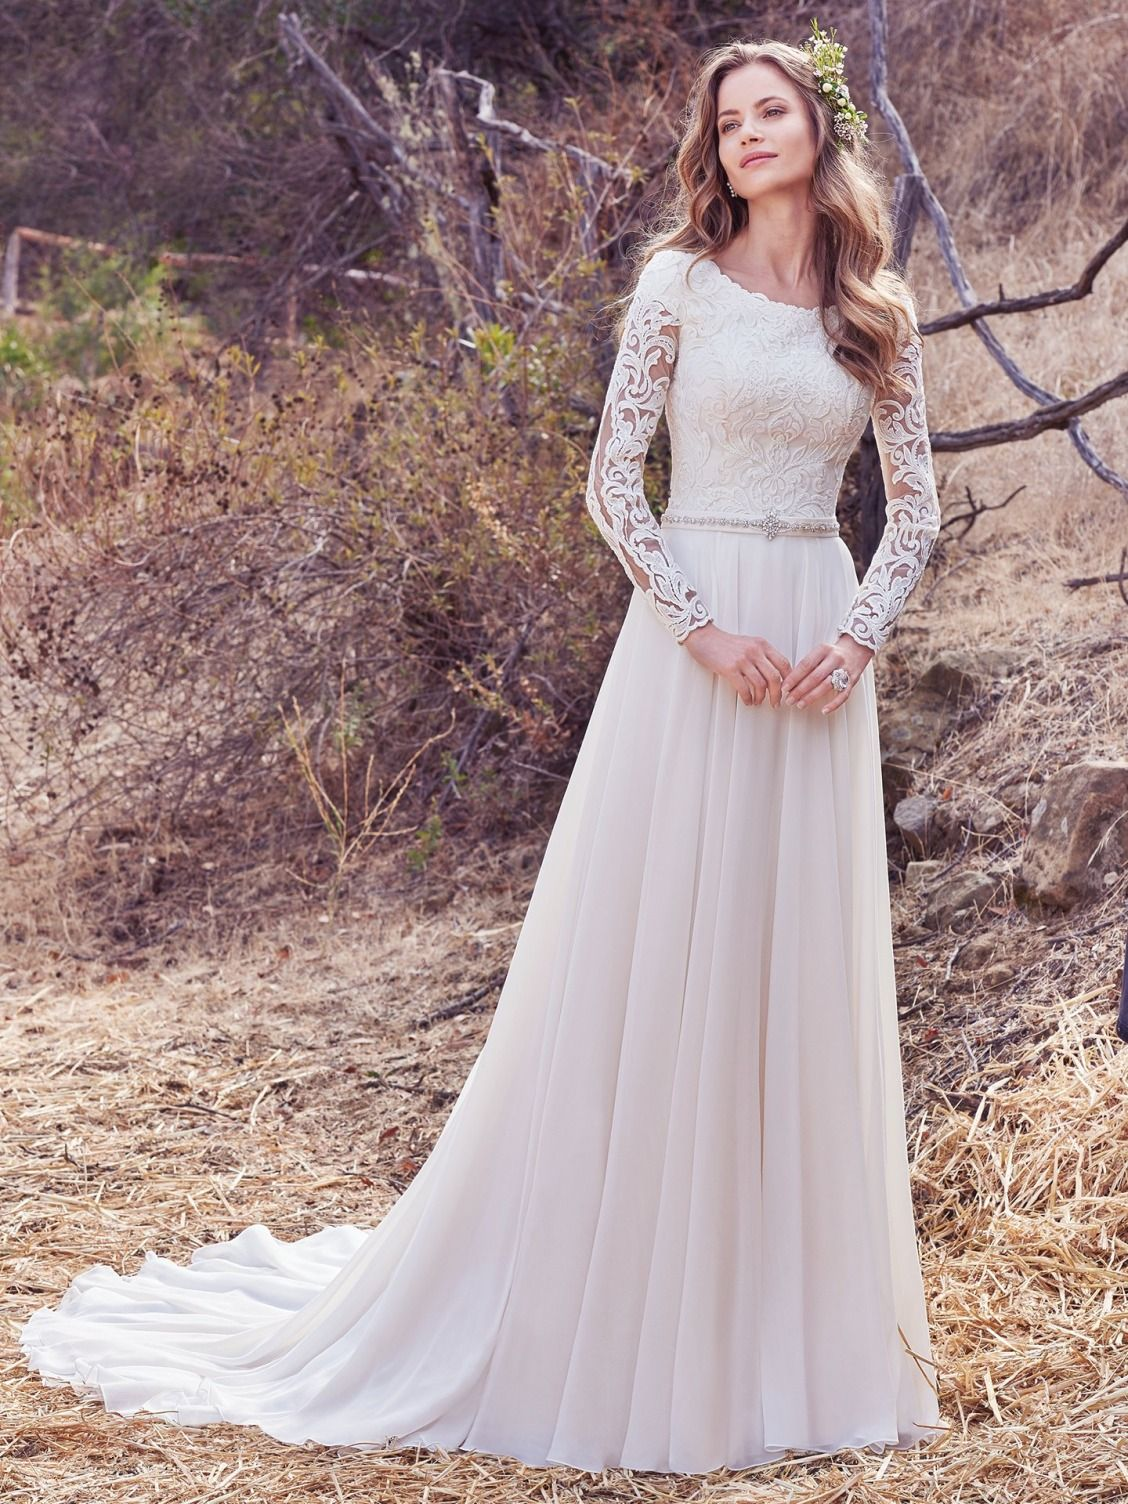 d05b2dded ... This Aurora Chiffon A-line wedding dress features a lace bodice with  illusion long-sleeves, accented in lace appliqués, over modest cap-sleeves.